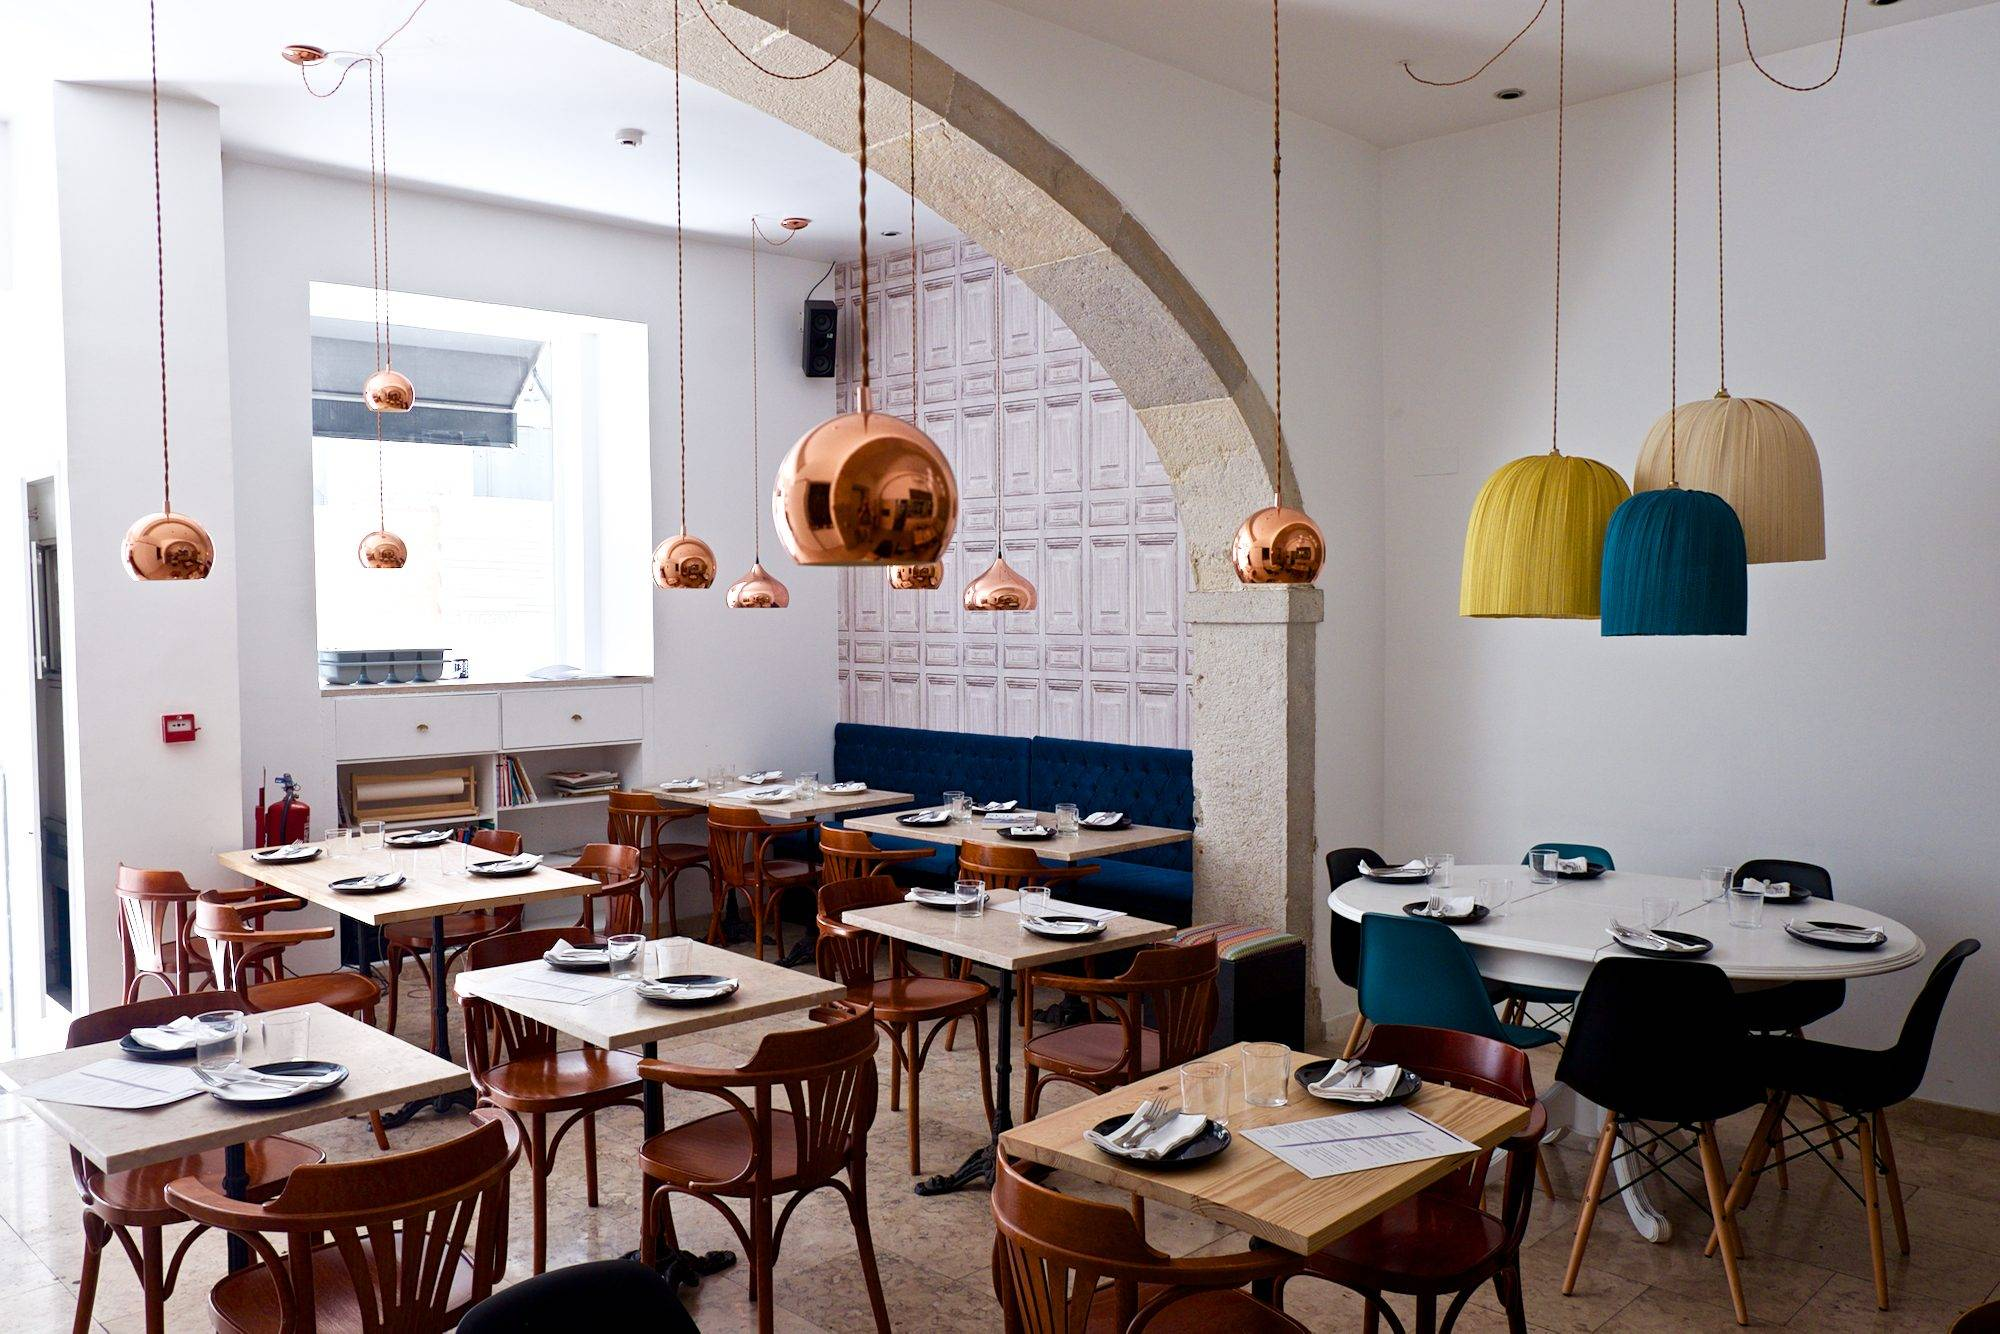 Our team picks Ao 26 Vegan Food Project to try vegan versions of traditional food in Lisbon.